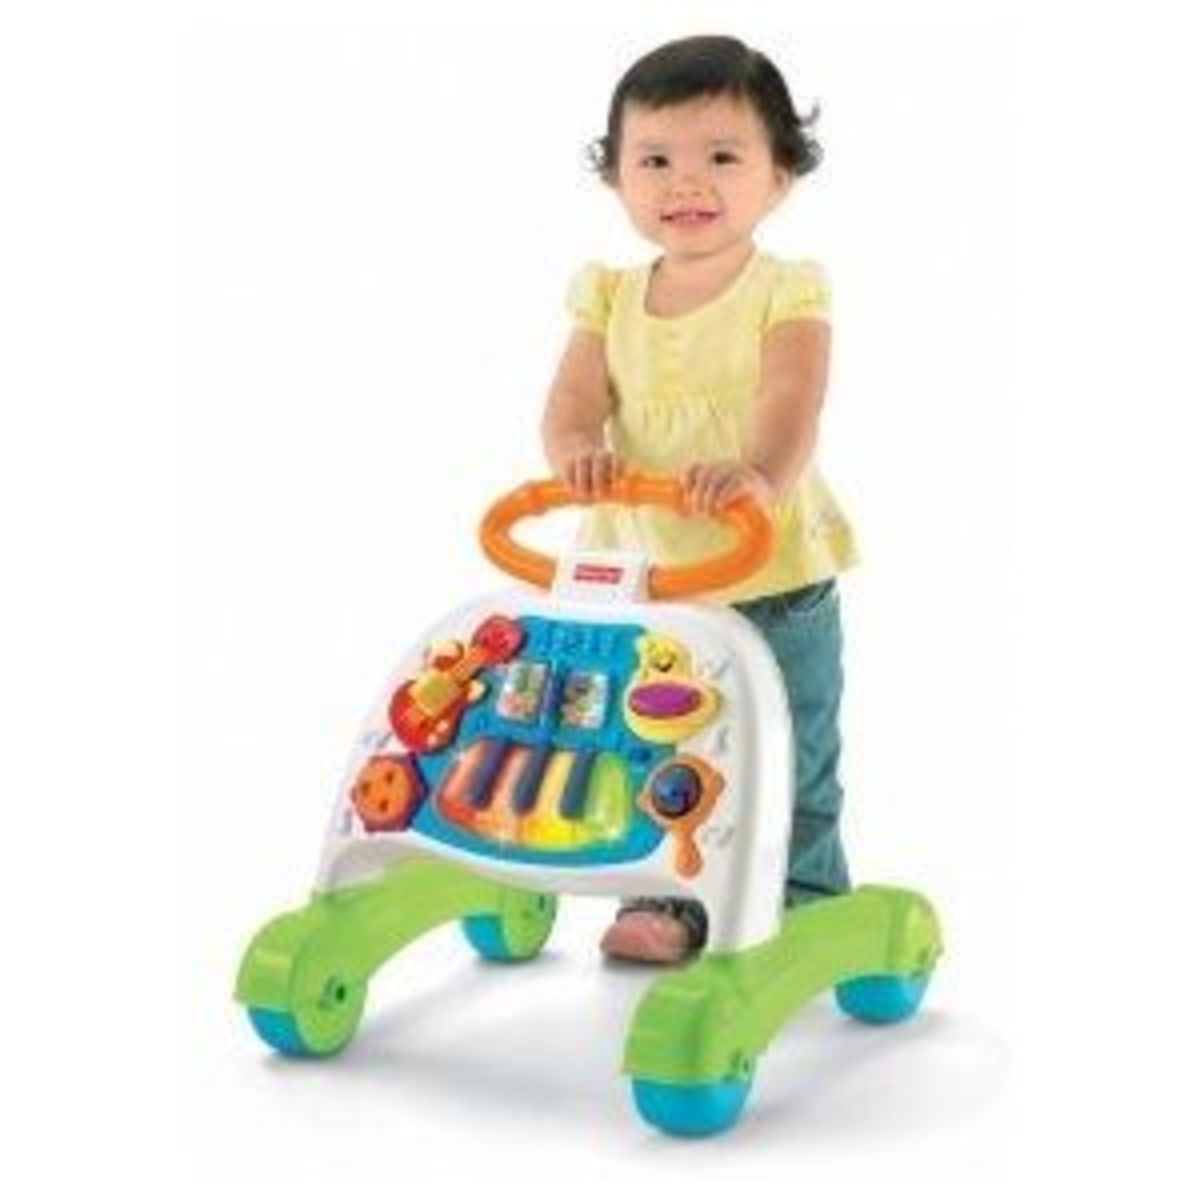 Learning Toys For One Year Olds : Best learning toys for year olds